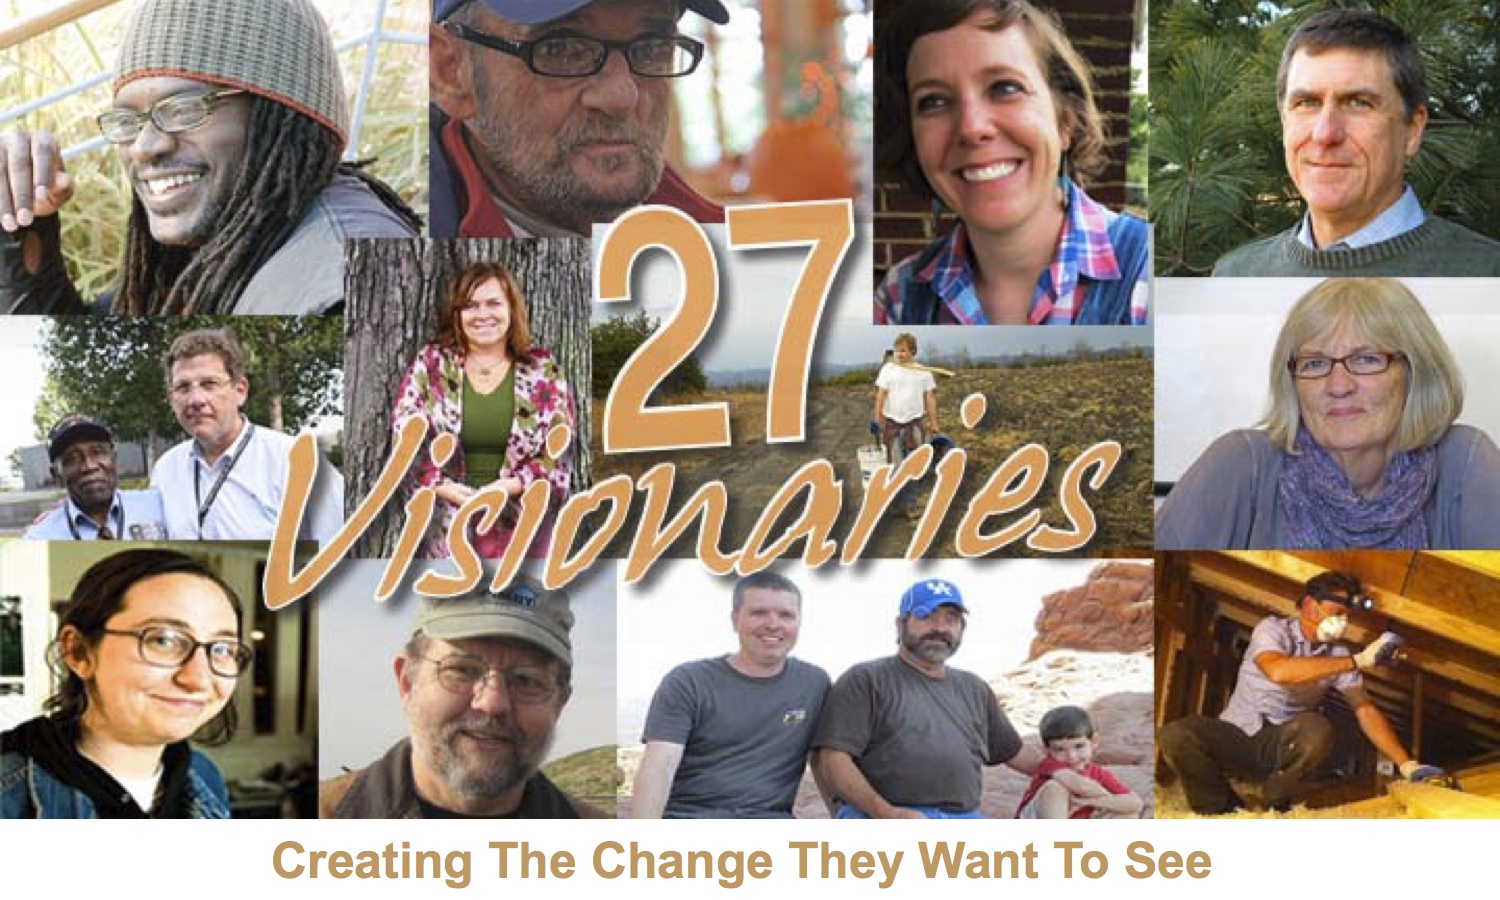 27 Visionaries